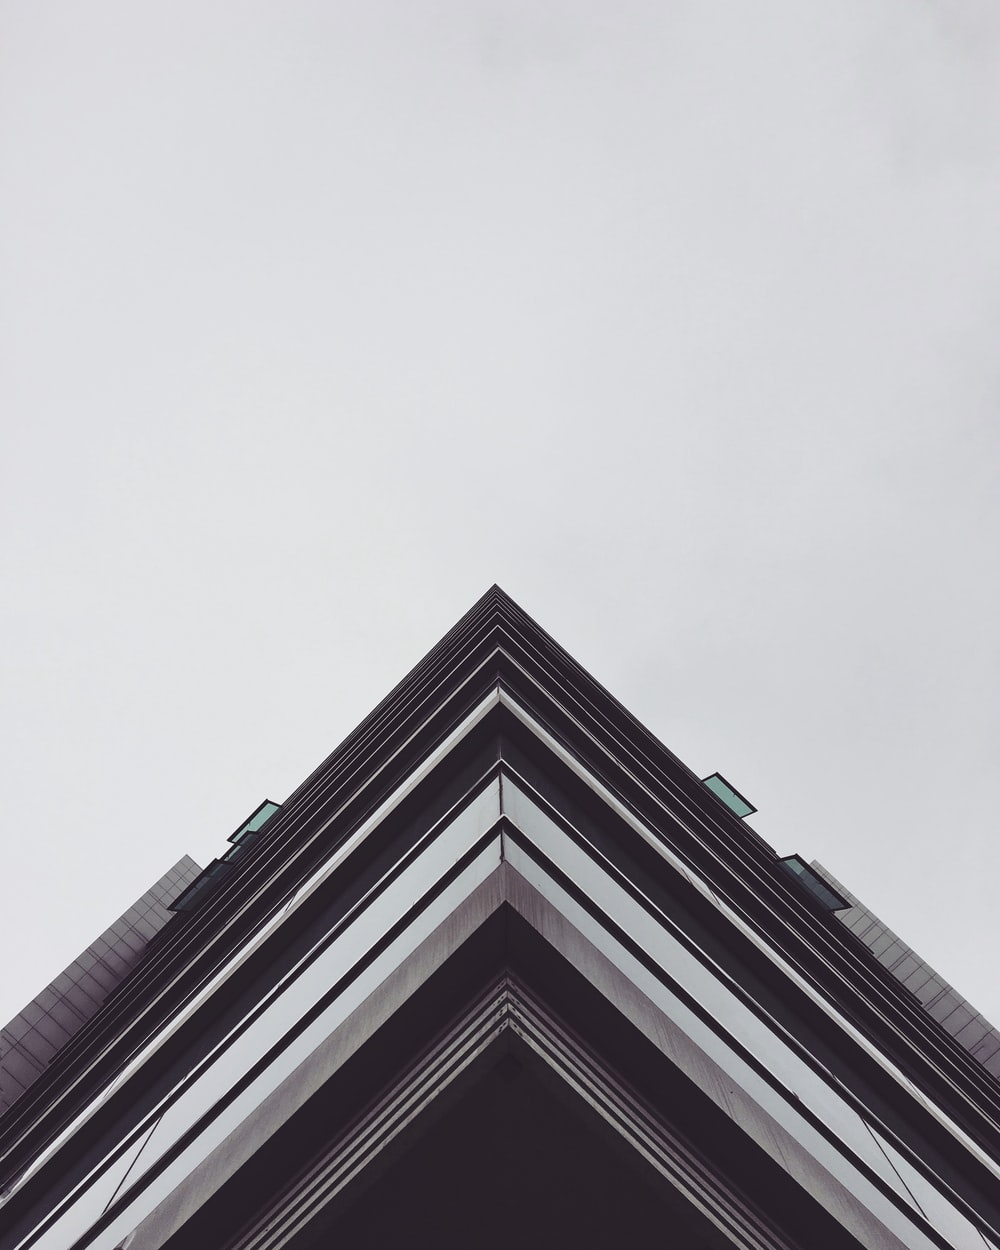 architectural photography of edge of building